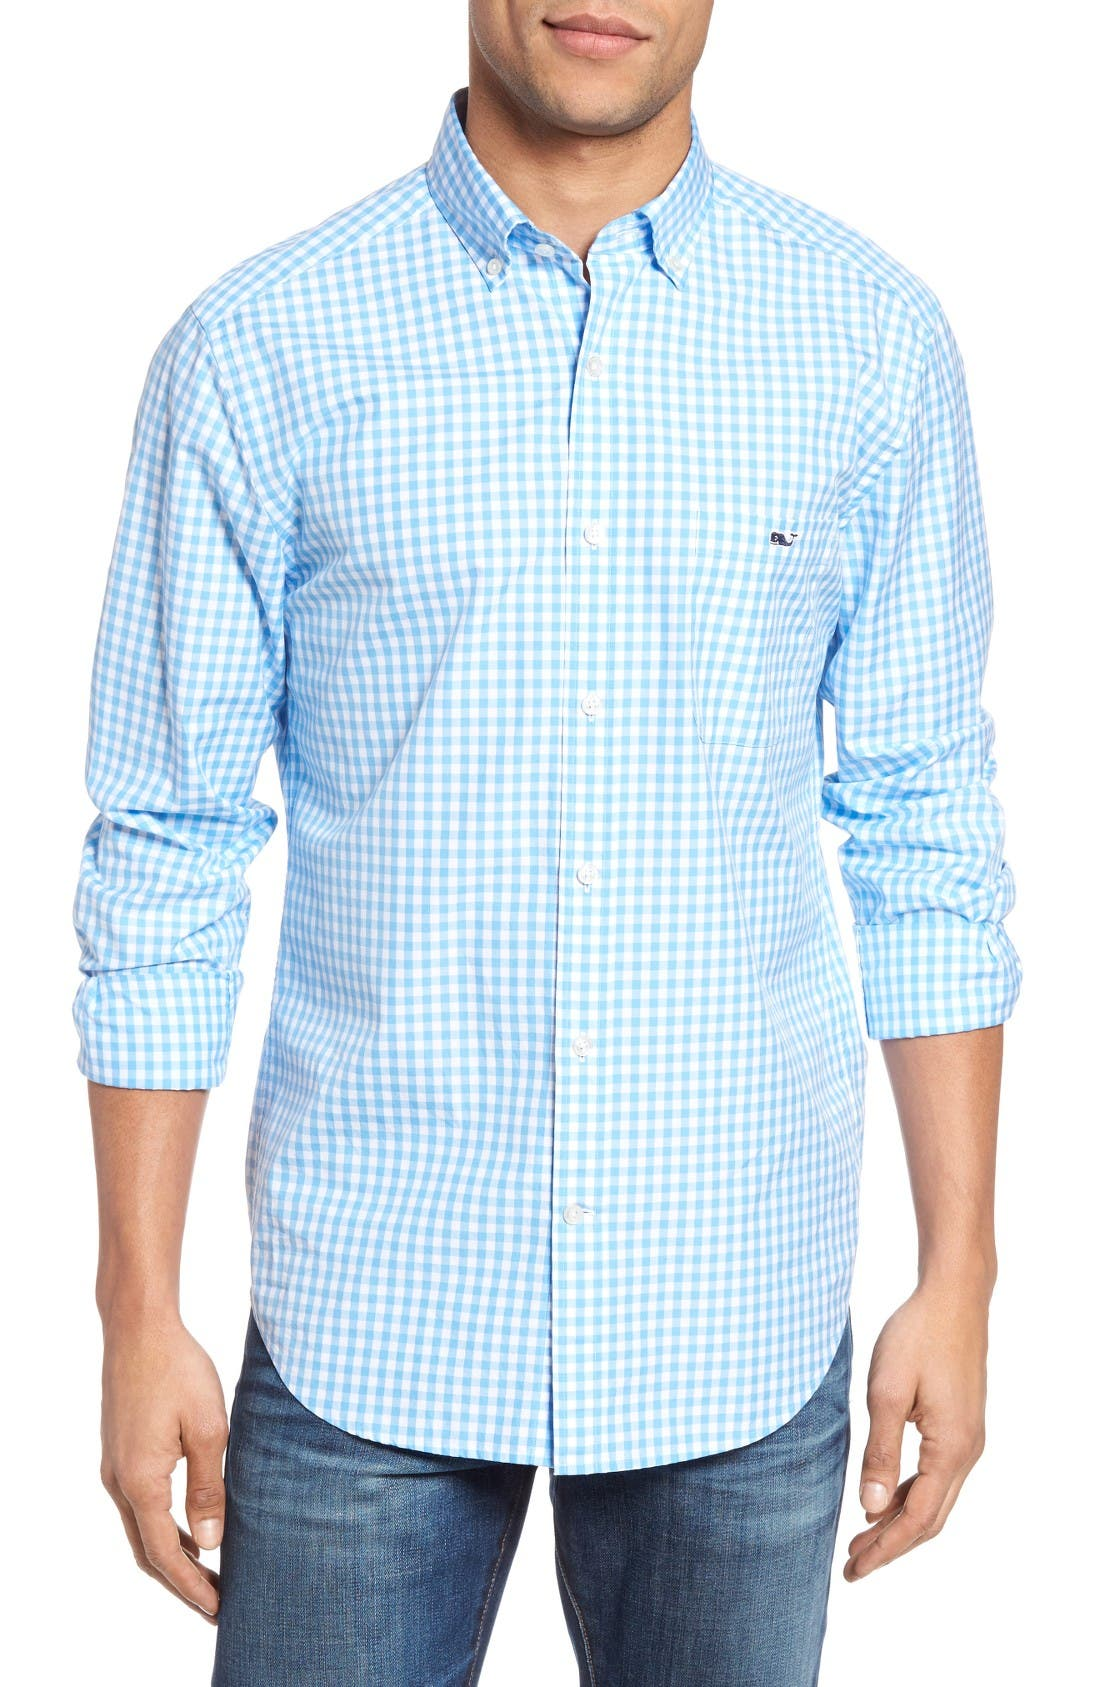 Elmont Gingham Sport Shirt,                         Main,                         color, Ocean Breeze Blue